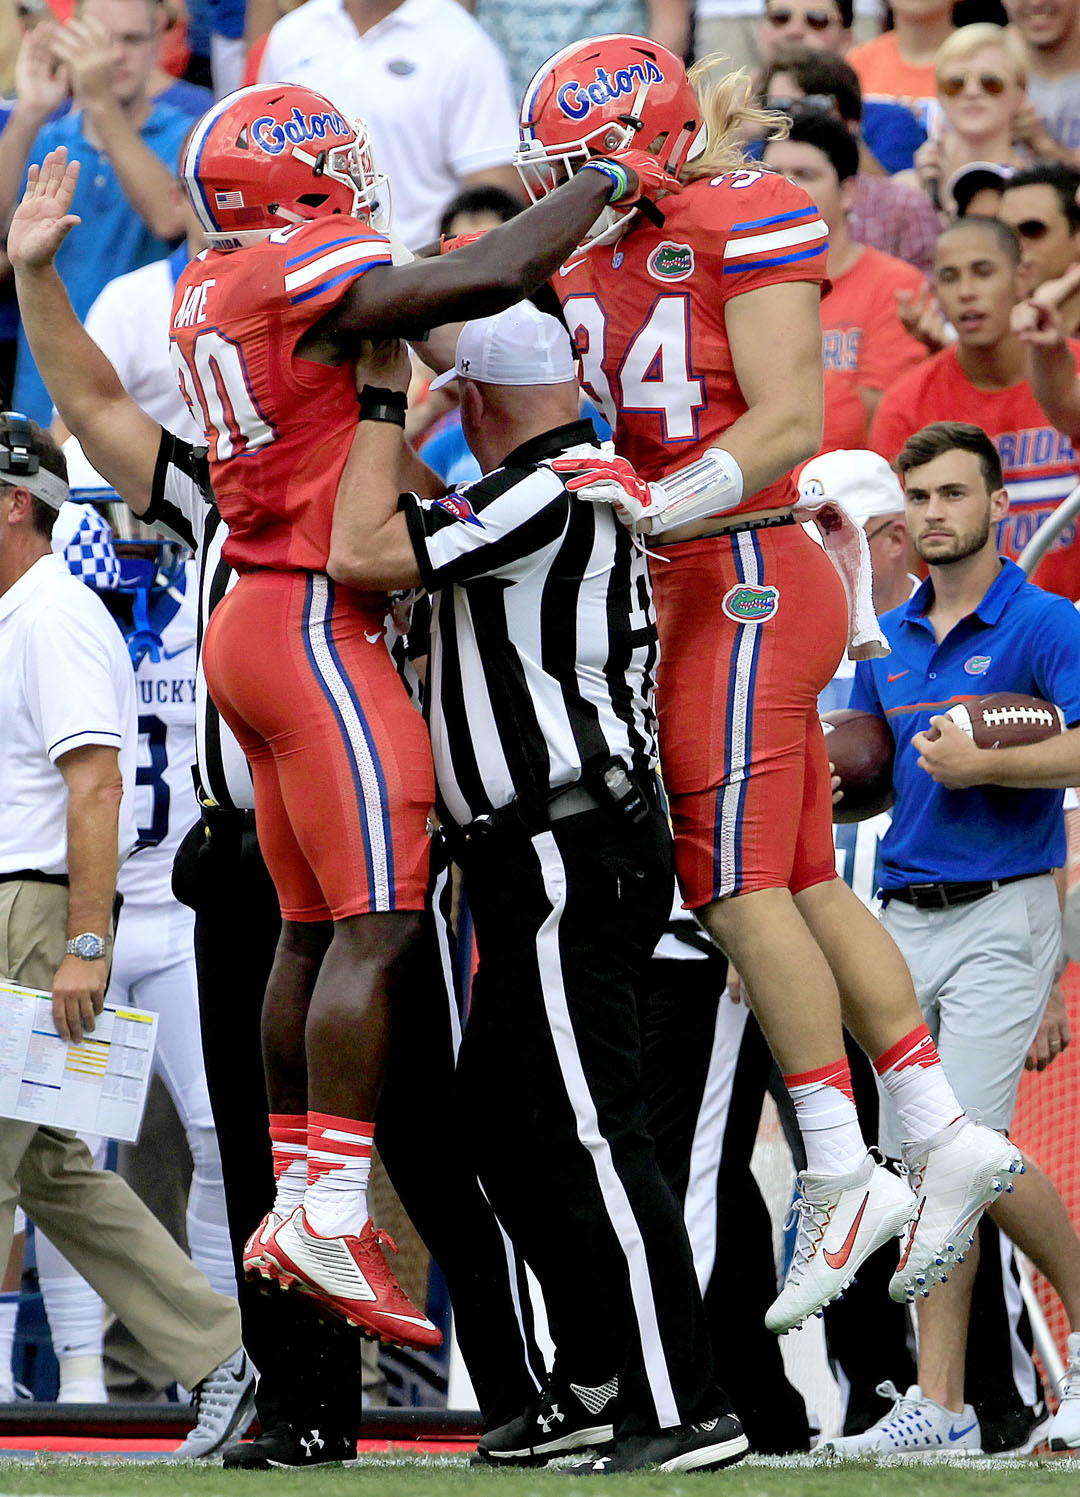 Florida Gators defensive back Marcus Maye (20) and linebacker Alex Anzalone (34) celebrate around a referee against the Kentucky Wildcats during the first half at Steve Spurrier Florida Field at Ben Hill Griffin Stadium on Saturday, Sept. 10, 2016 in Gainesville, FL. Florida defeated Kentucky 45-7. Matt Stamey/Gainesville Sun